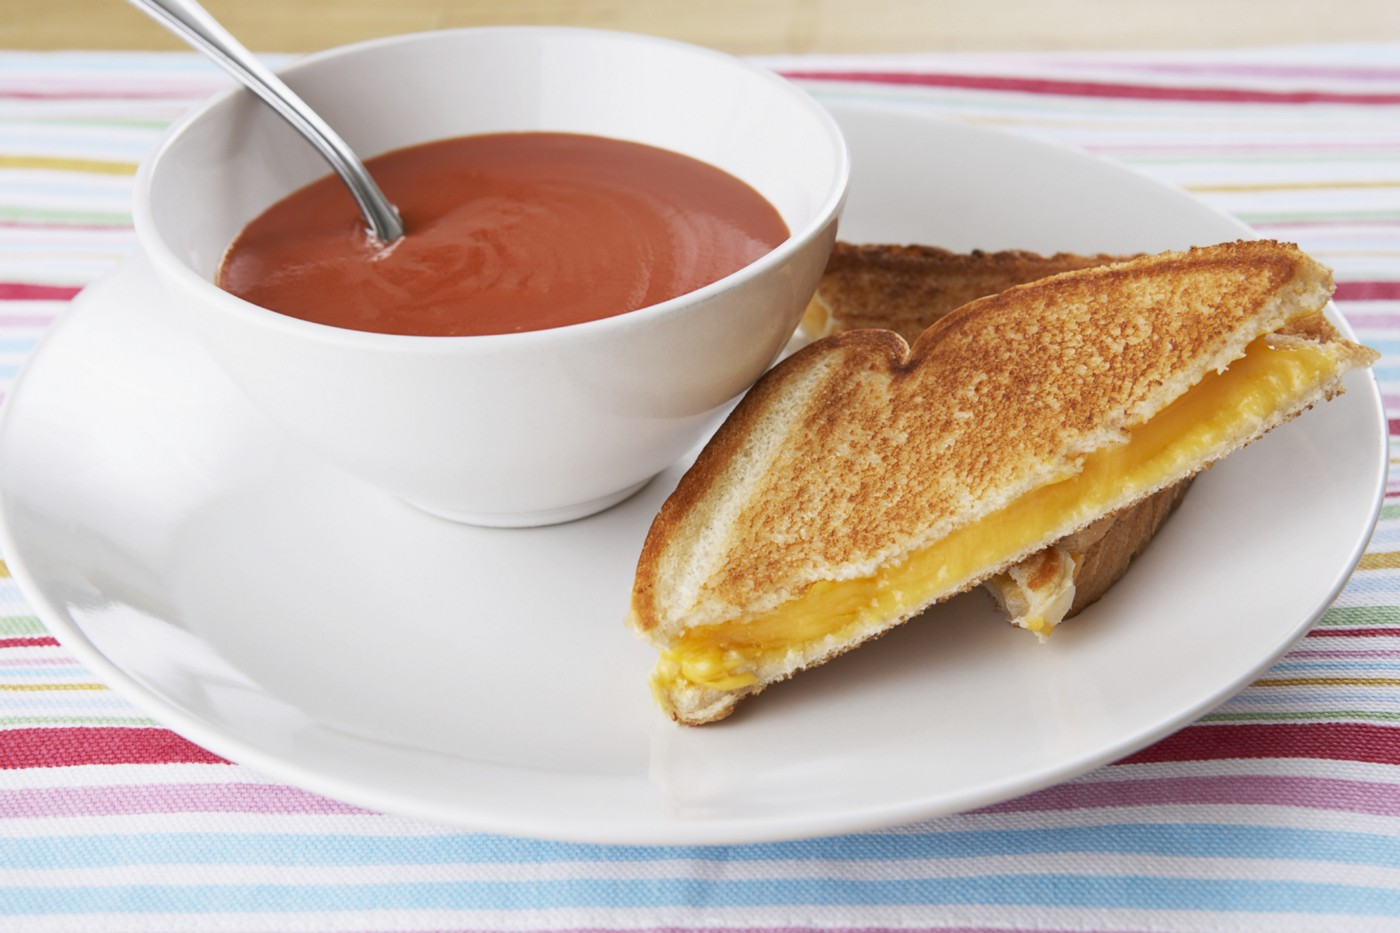 Grilled cheese sandwich and tomato soup.